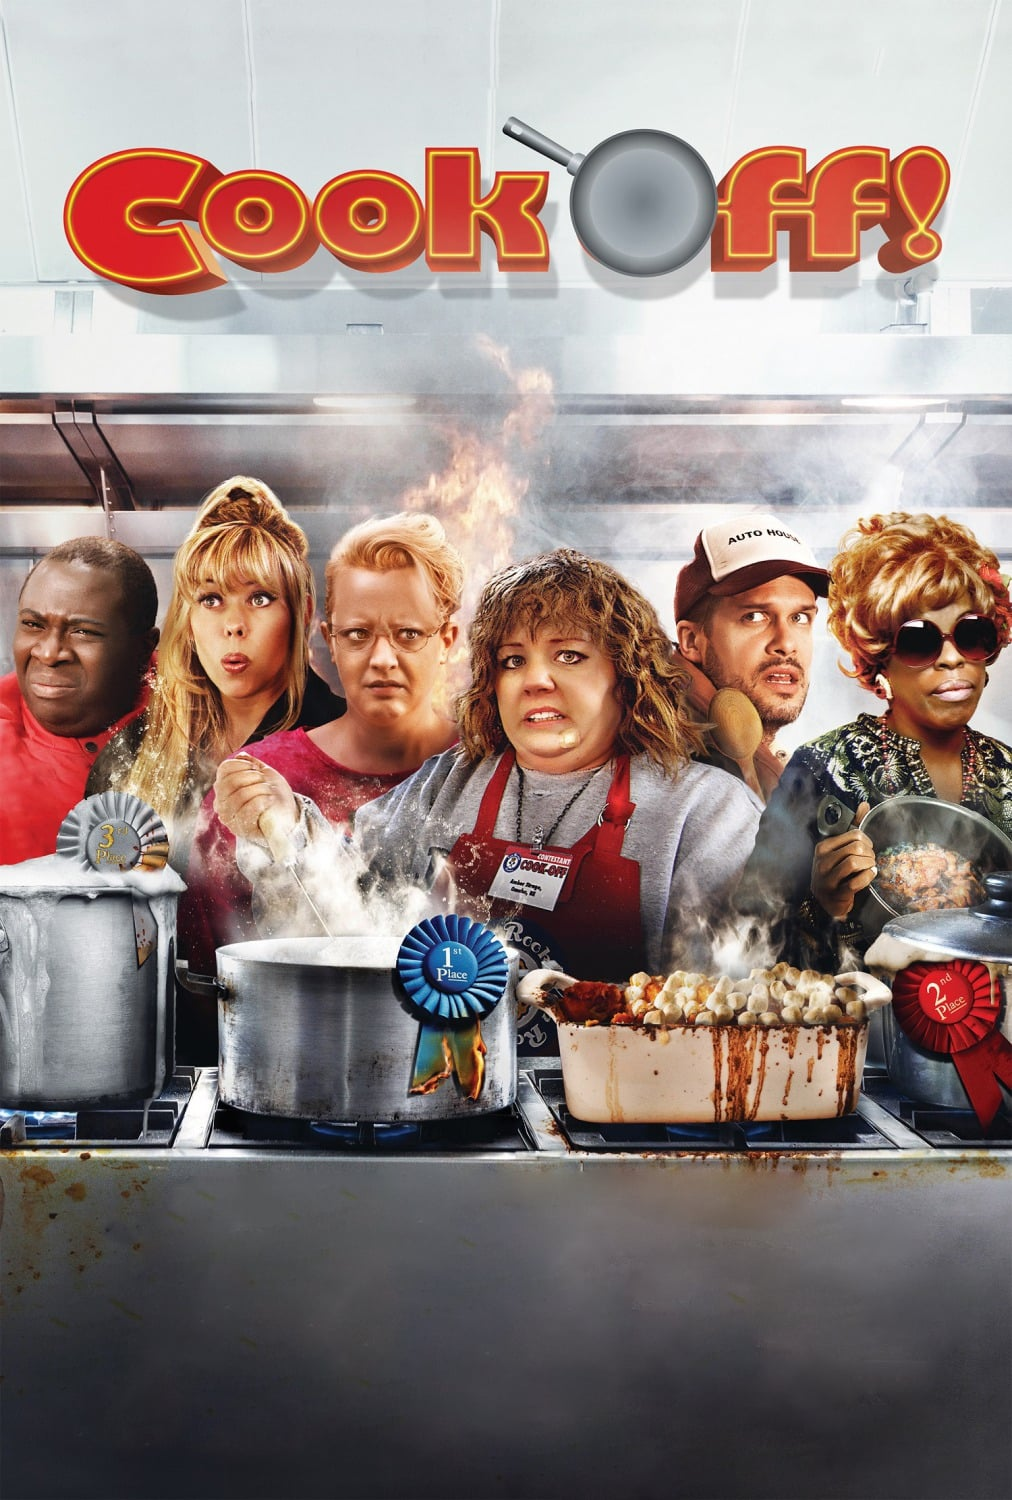 image for Cook-Off!